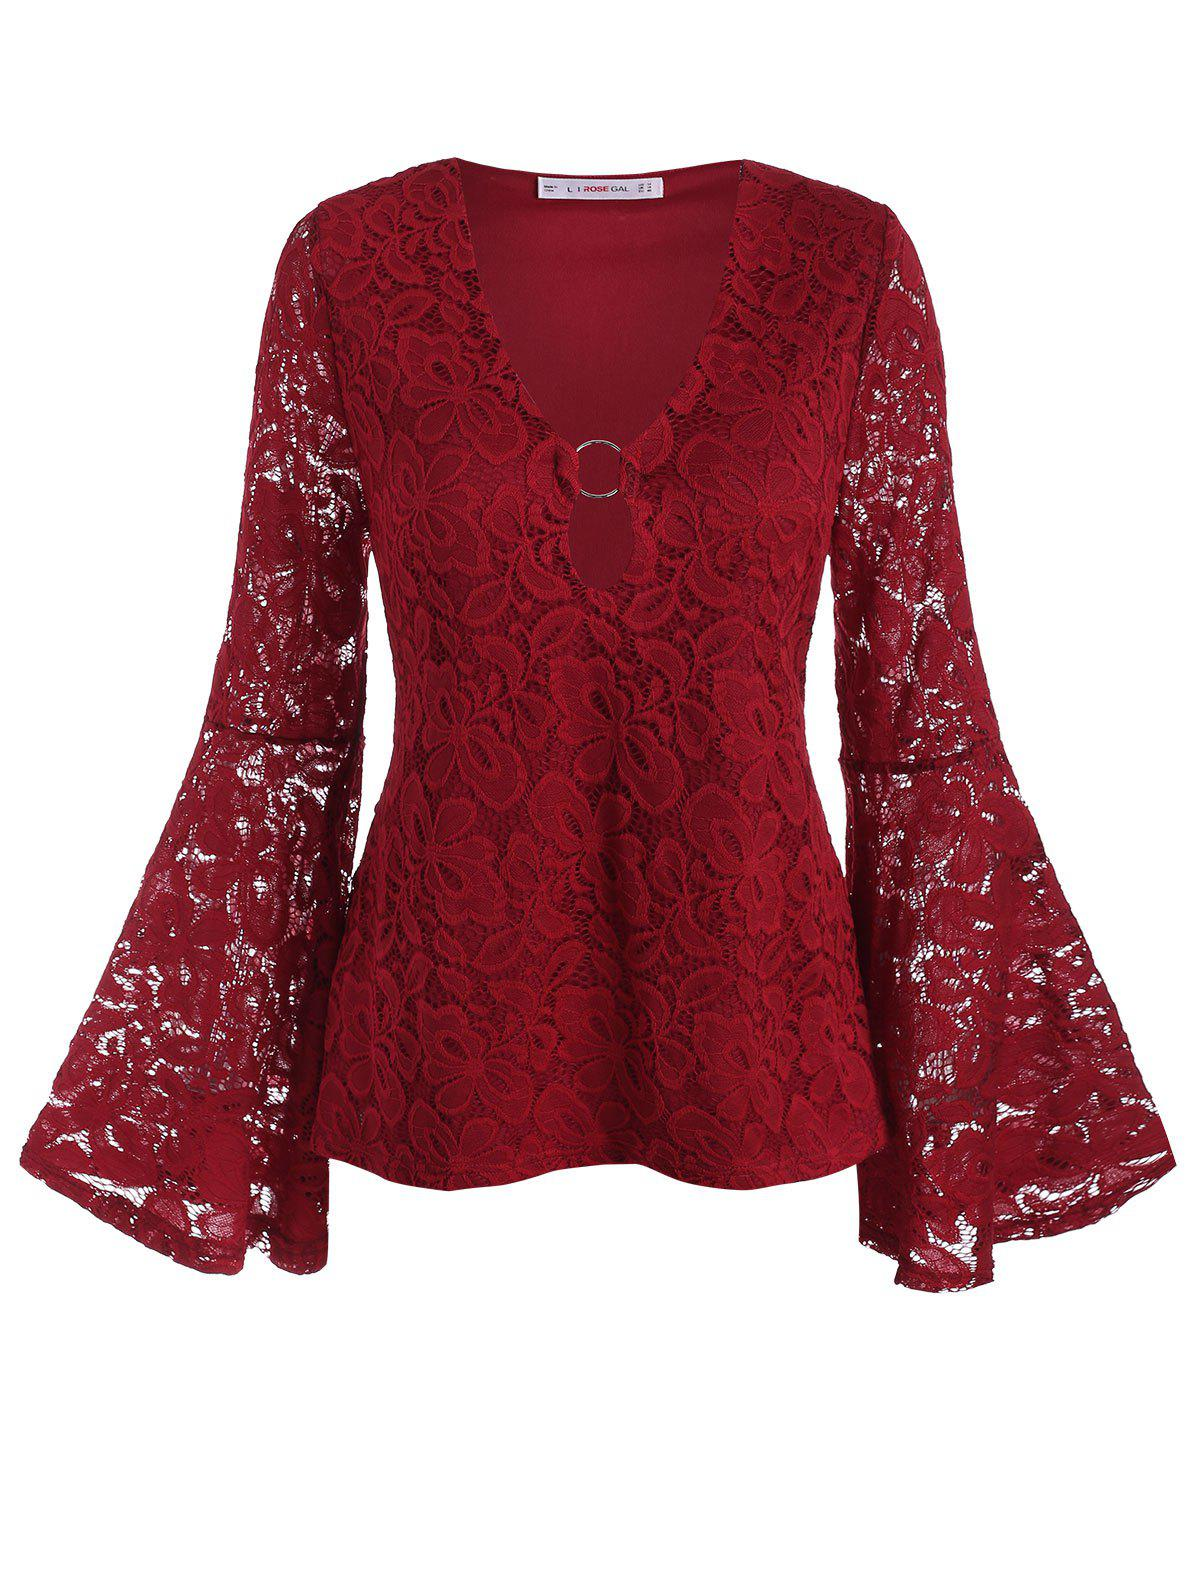 Plus Size O Ring Bell Sleeve Lace Blouse - DEEP RED 5X